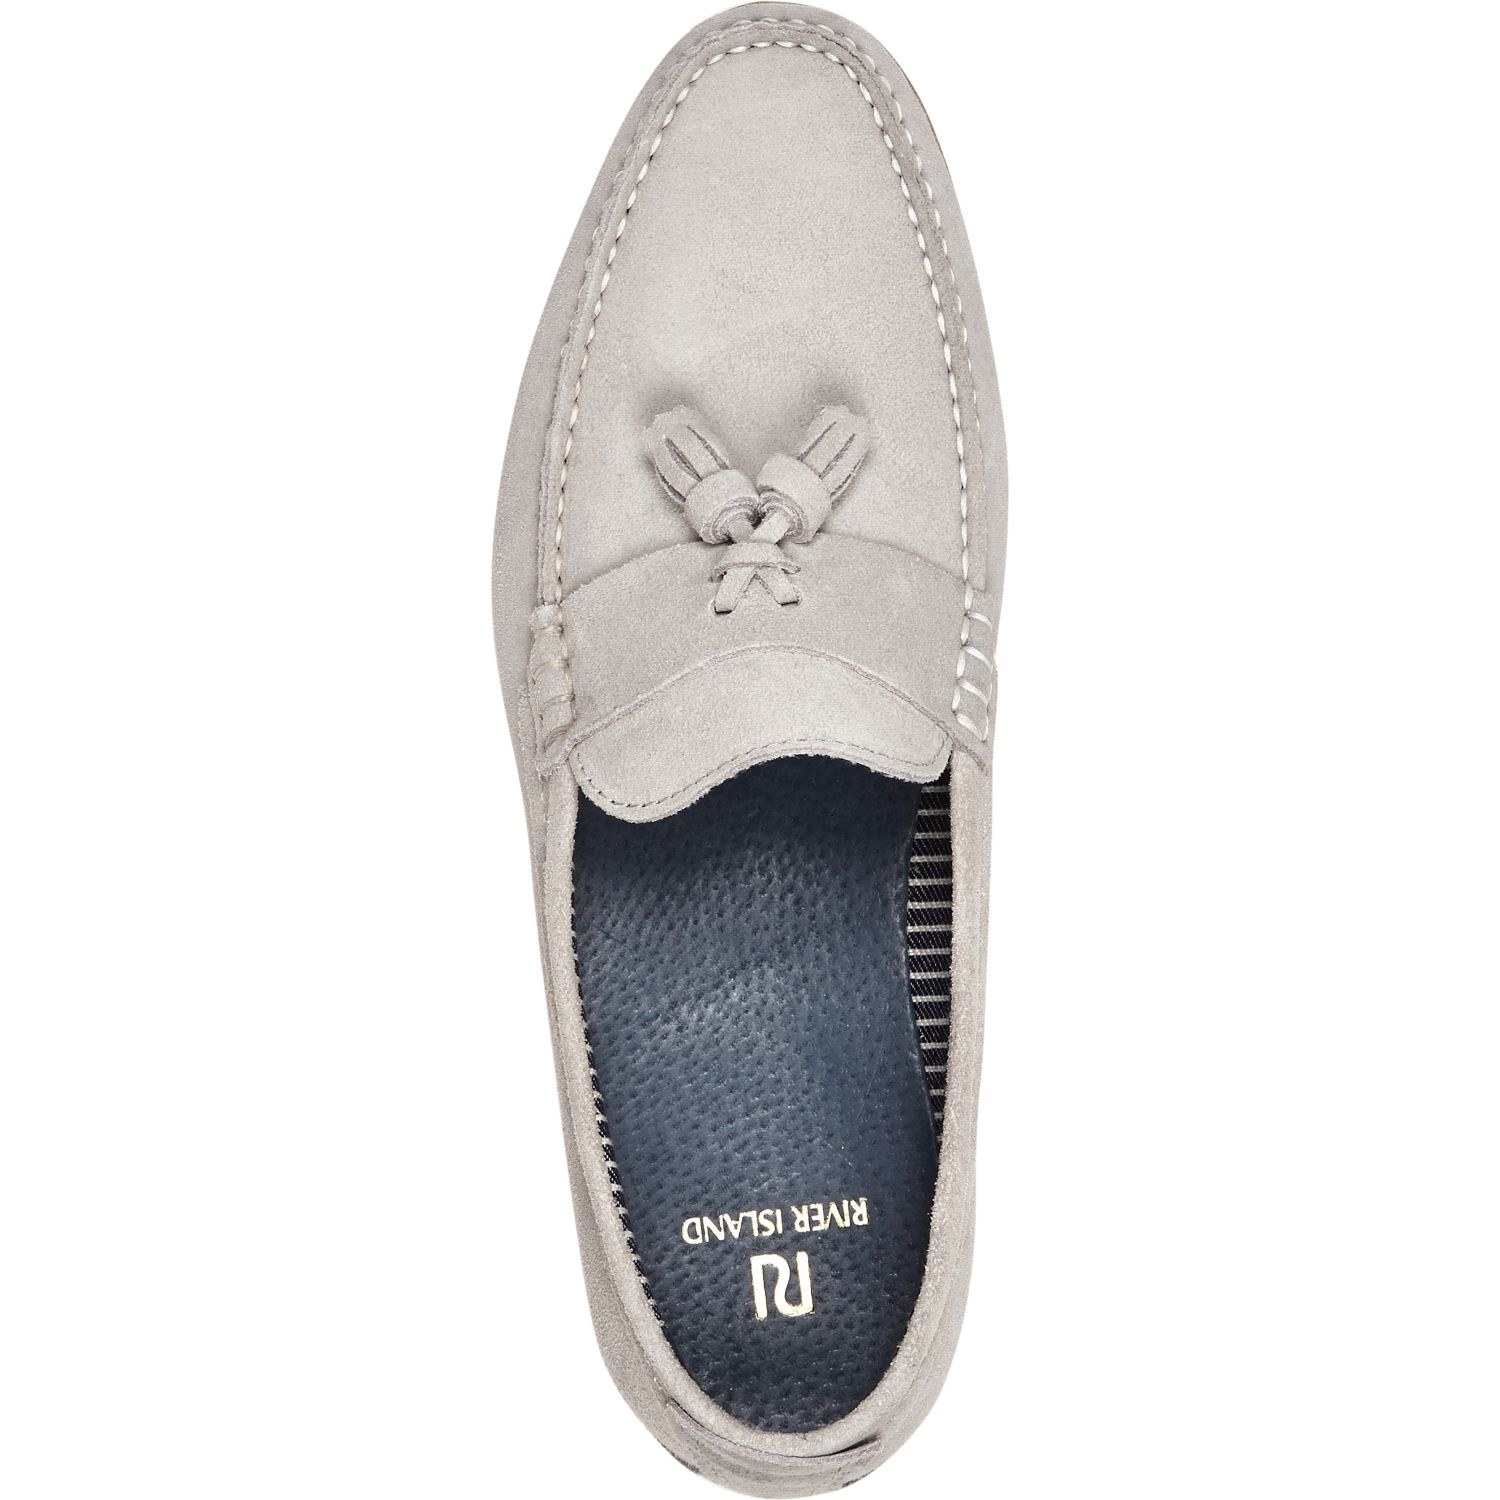 51206b64856 River Island Light Grey Suede Tassel Loafers in Gray for Men - Lyst